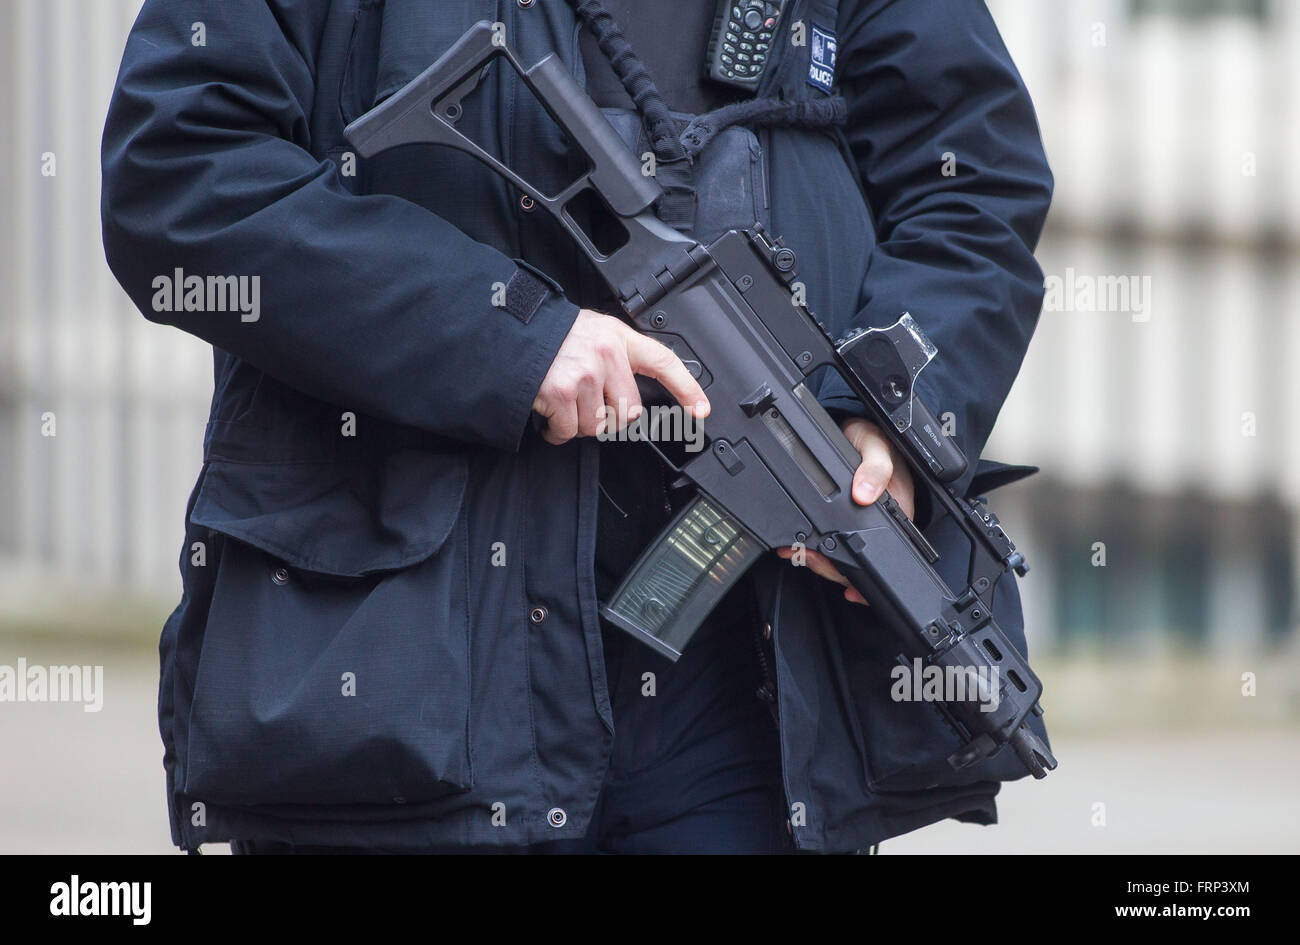 Stock On Gun Cabinet Armed Police Officer Patrols Downing Street With A Machine Gun